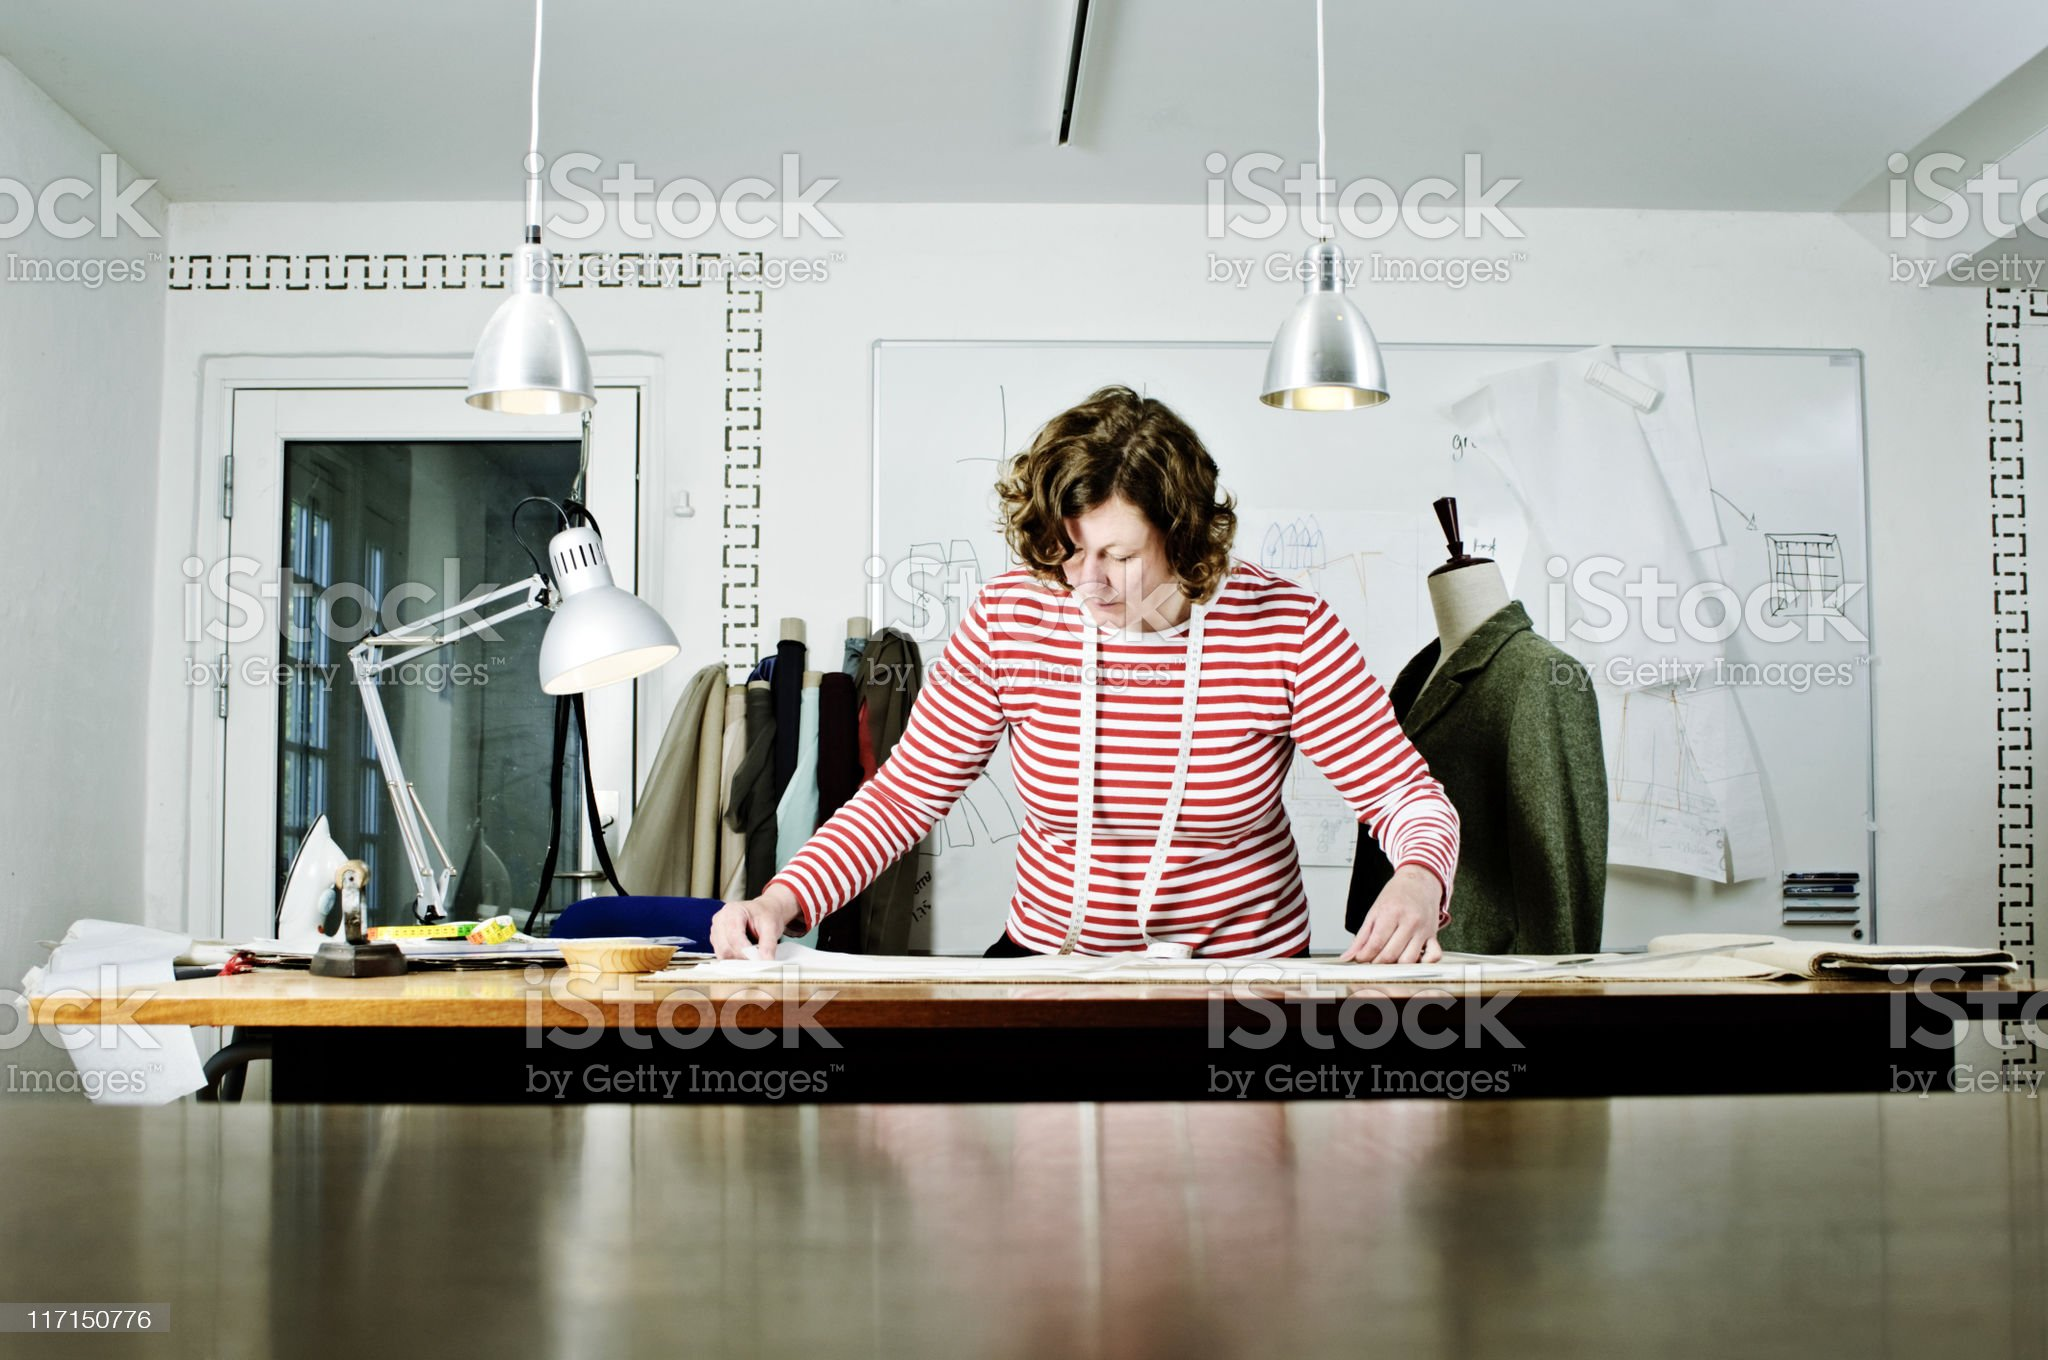 Dressmaker At Work In Her Design Studio royalty-free stock photo